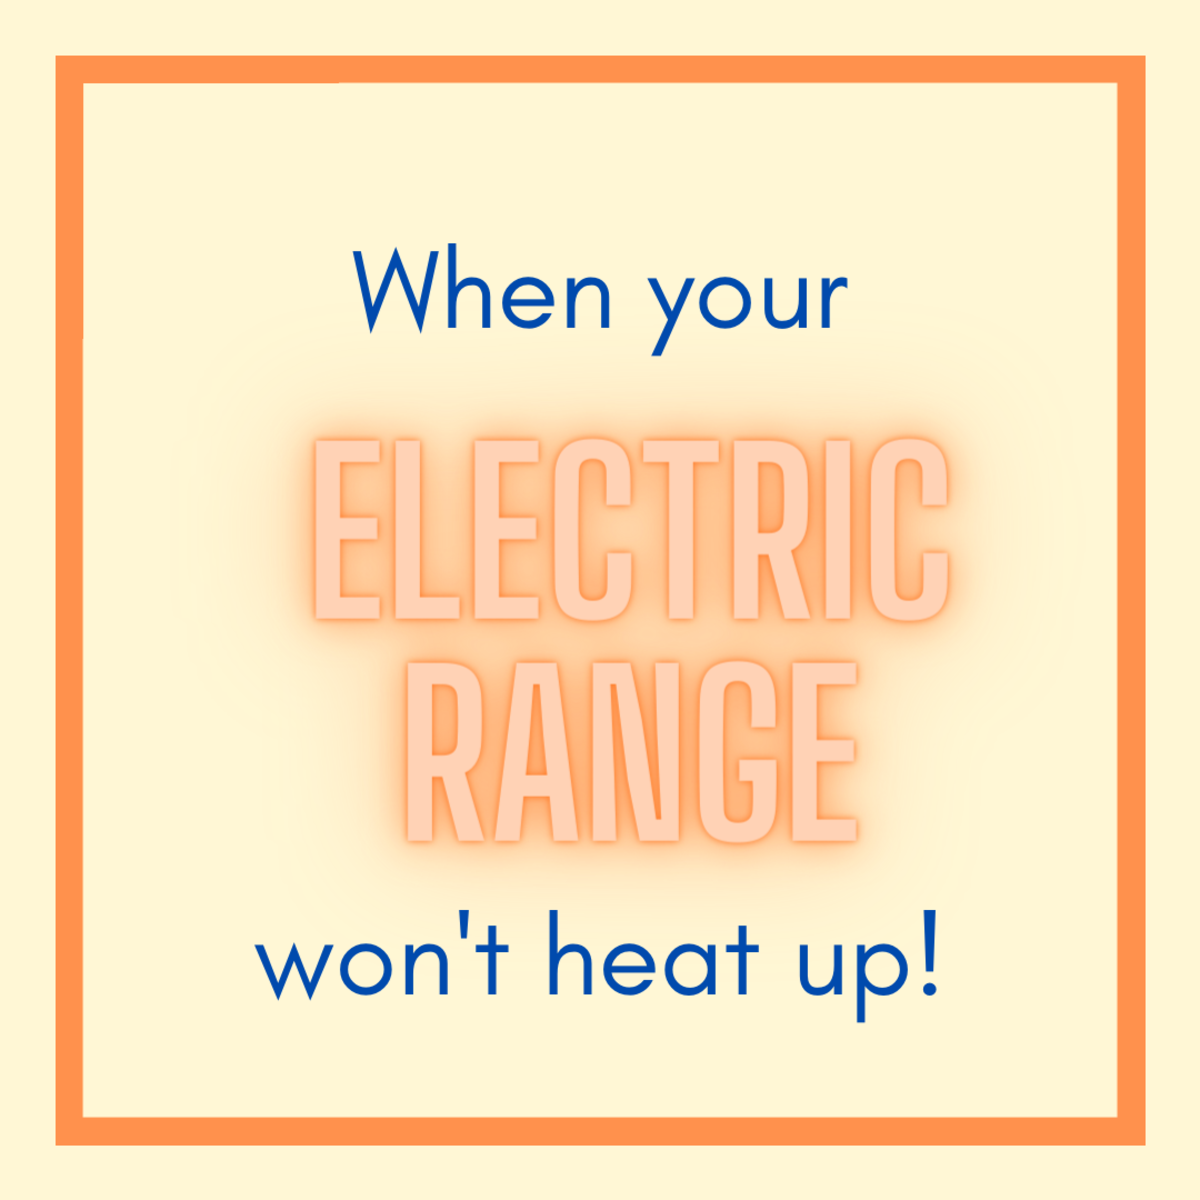 How to Repair an Electric Range Burner That Won't Heat Up